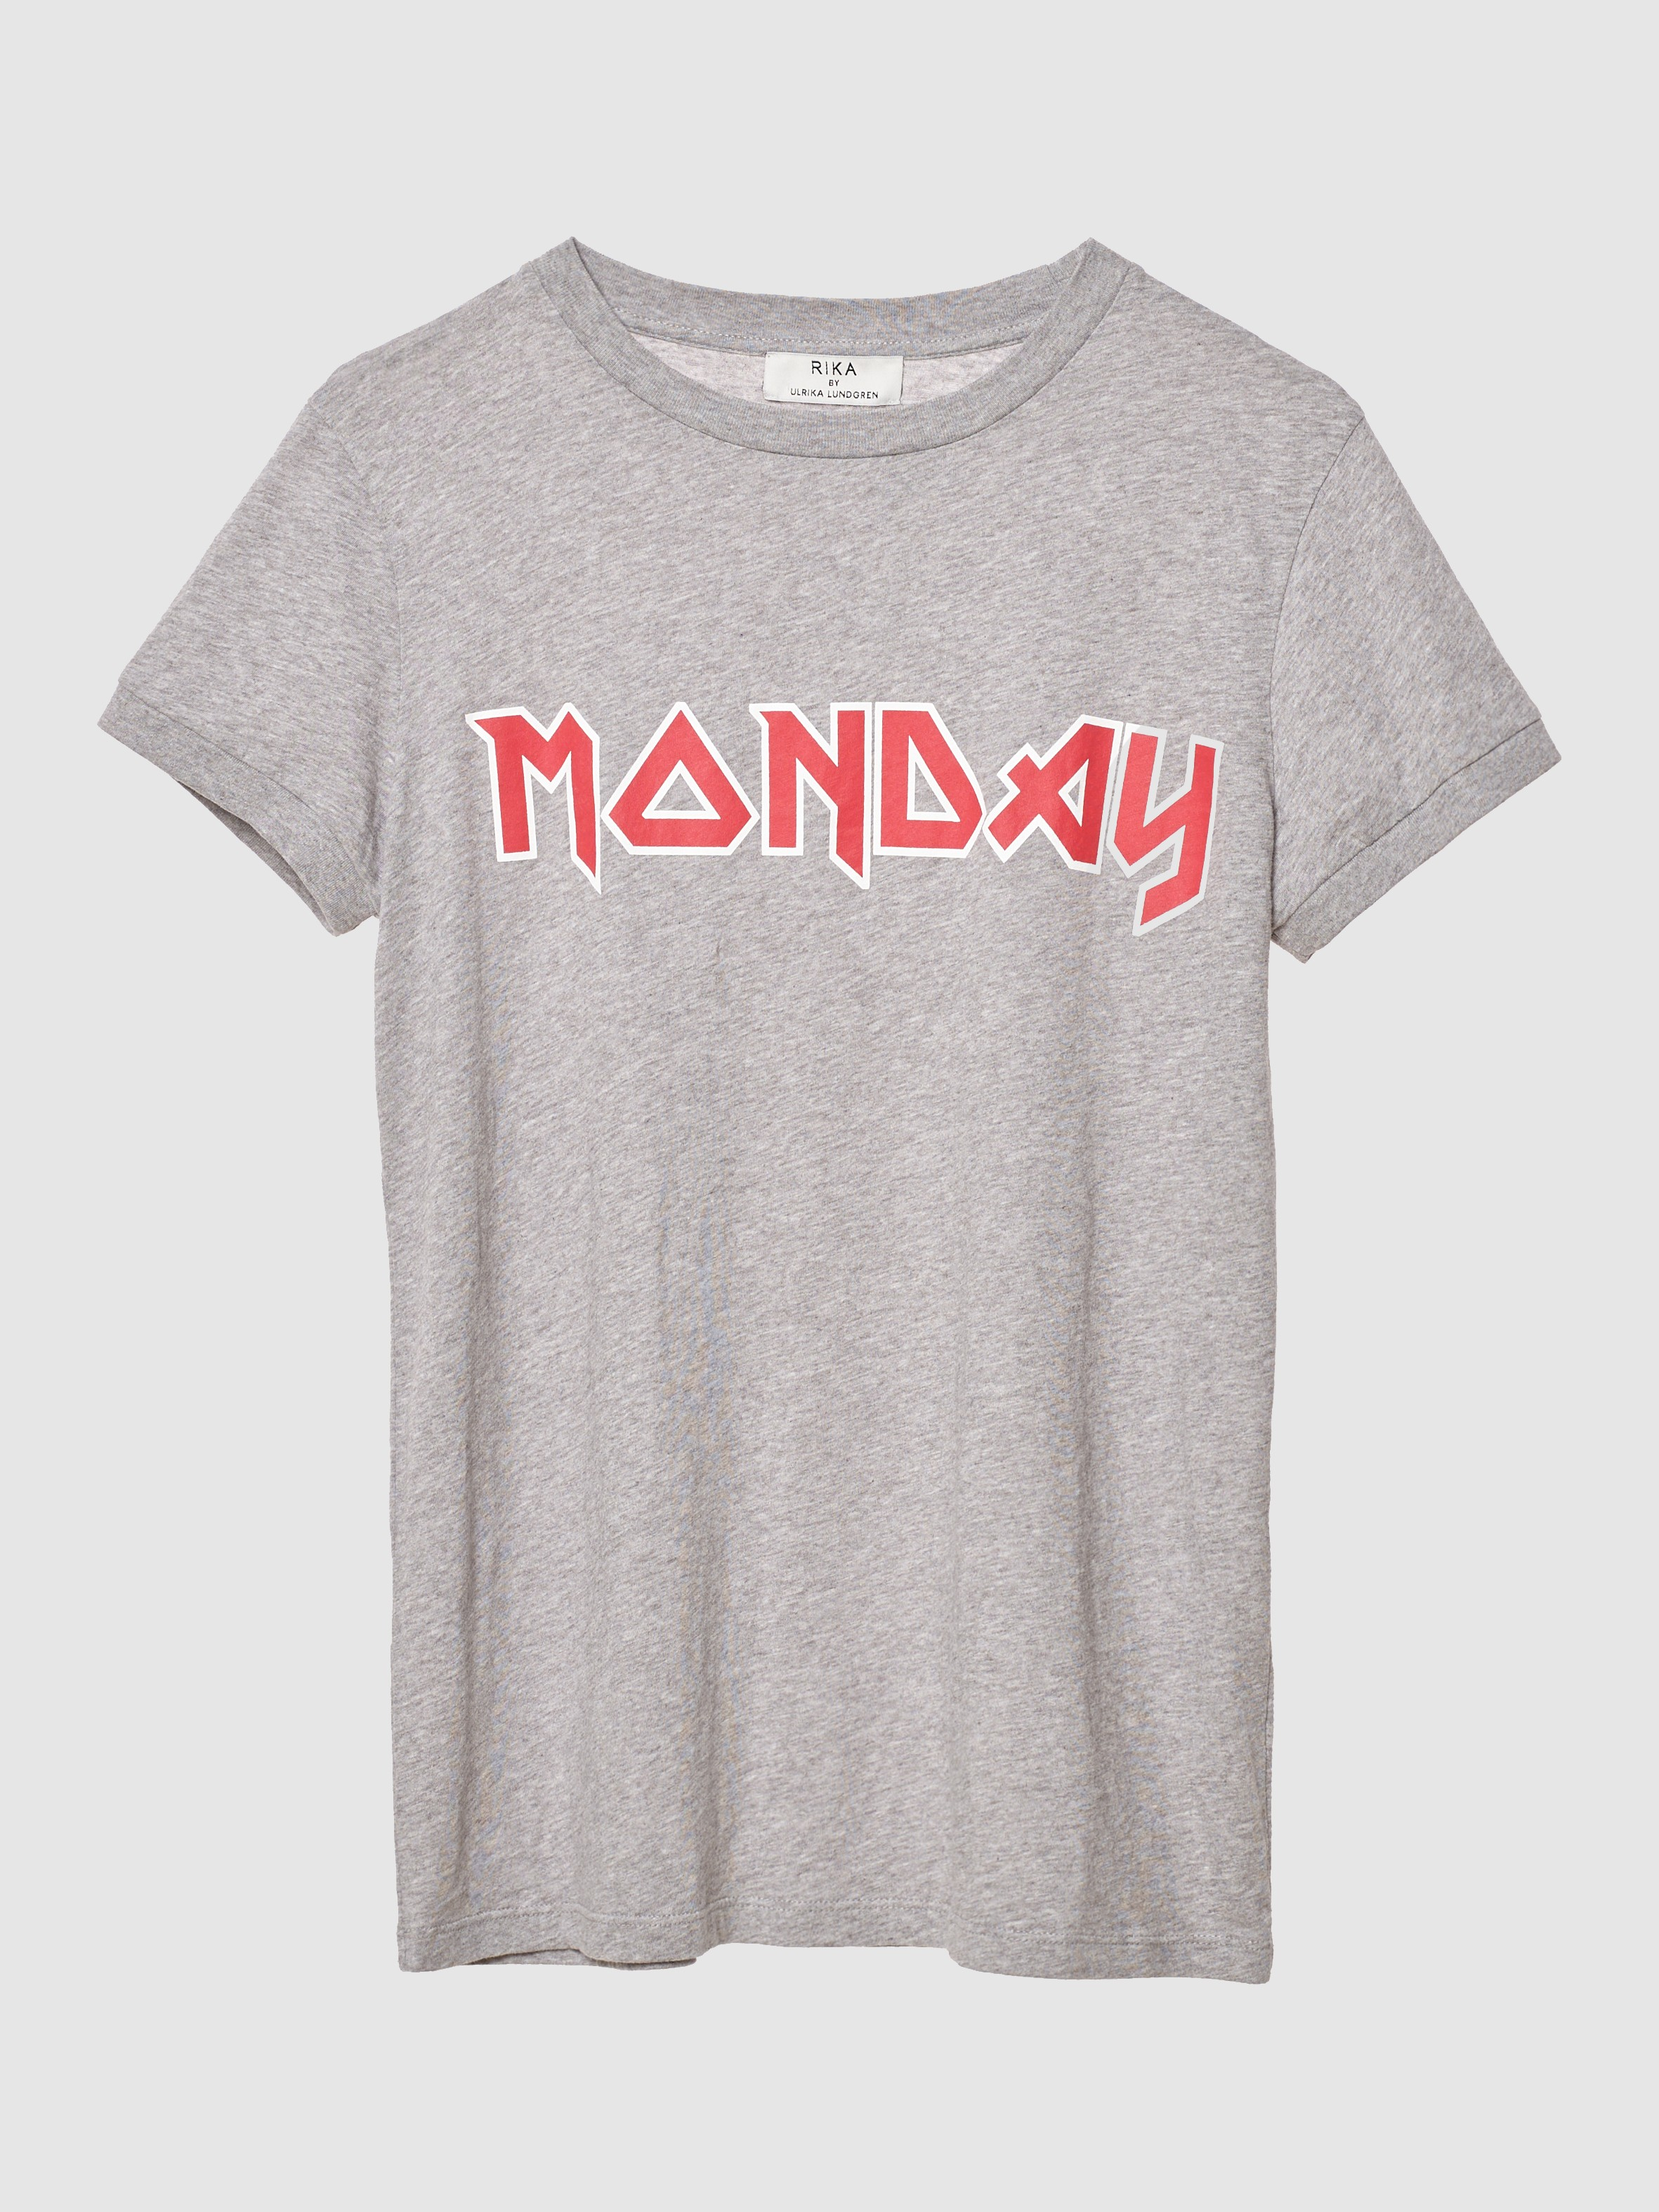 41baad56 LANI-TEE-GREY-MONDAY-RIKA-STUDIOS-OUTLET